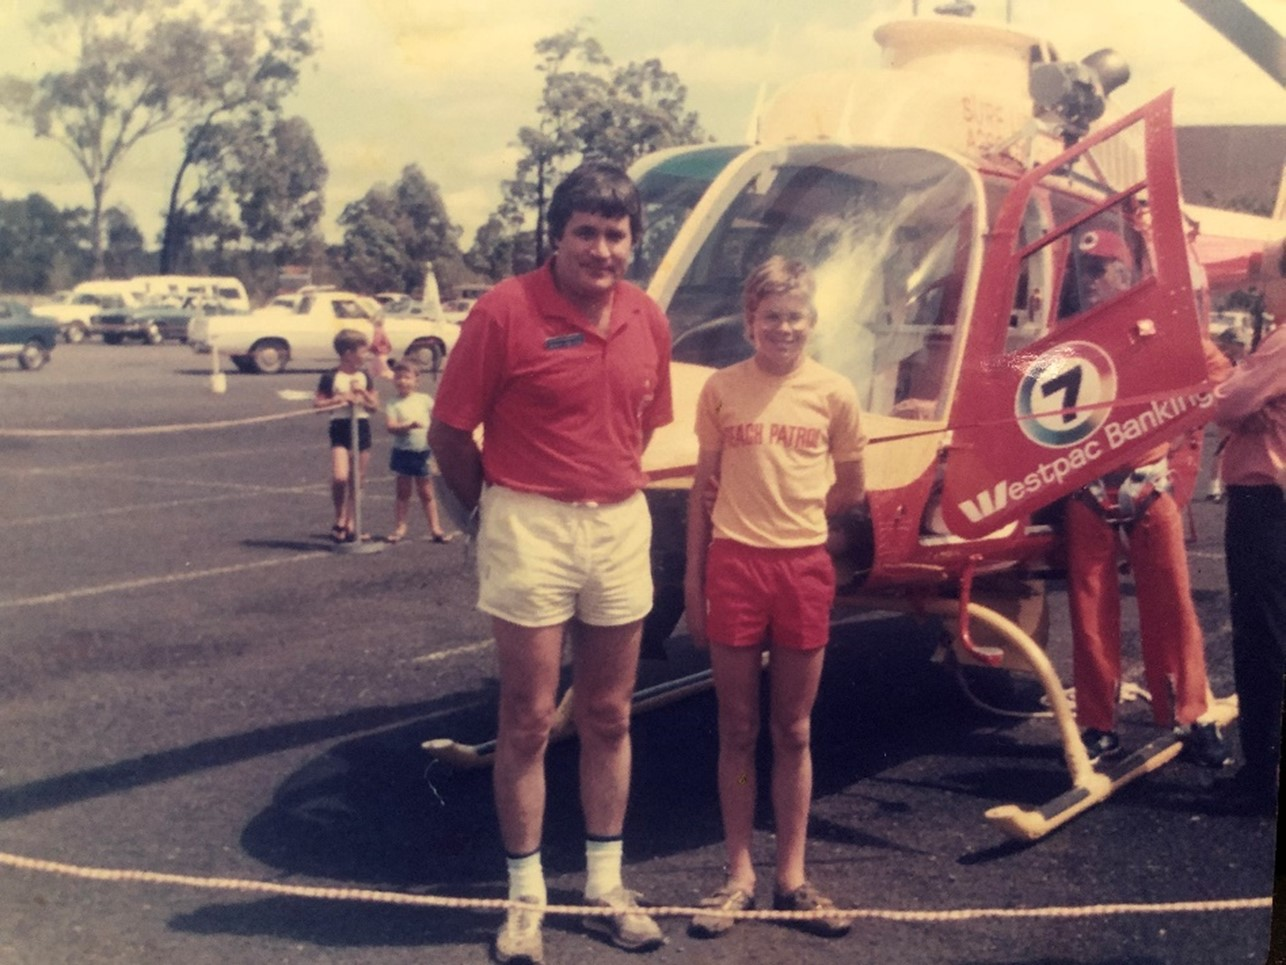 An old photo of Scott Collins and his father, who was also passionately involved in life-saving activities for over 40 years, posing in front of a helicopter.